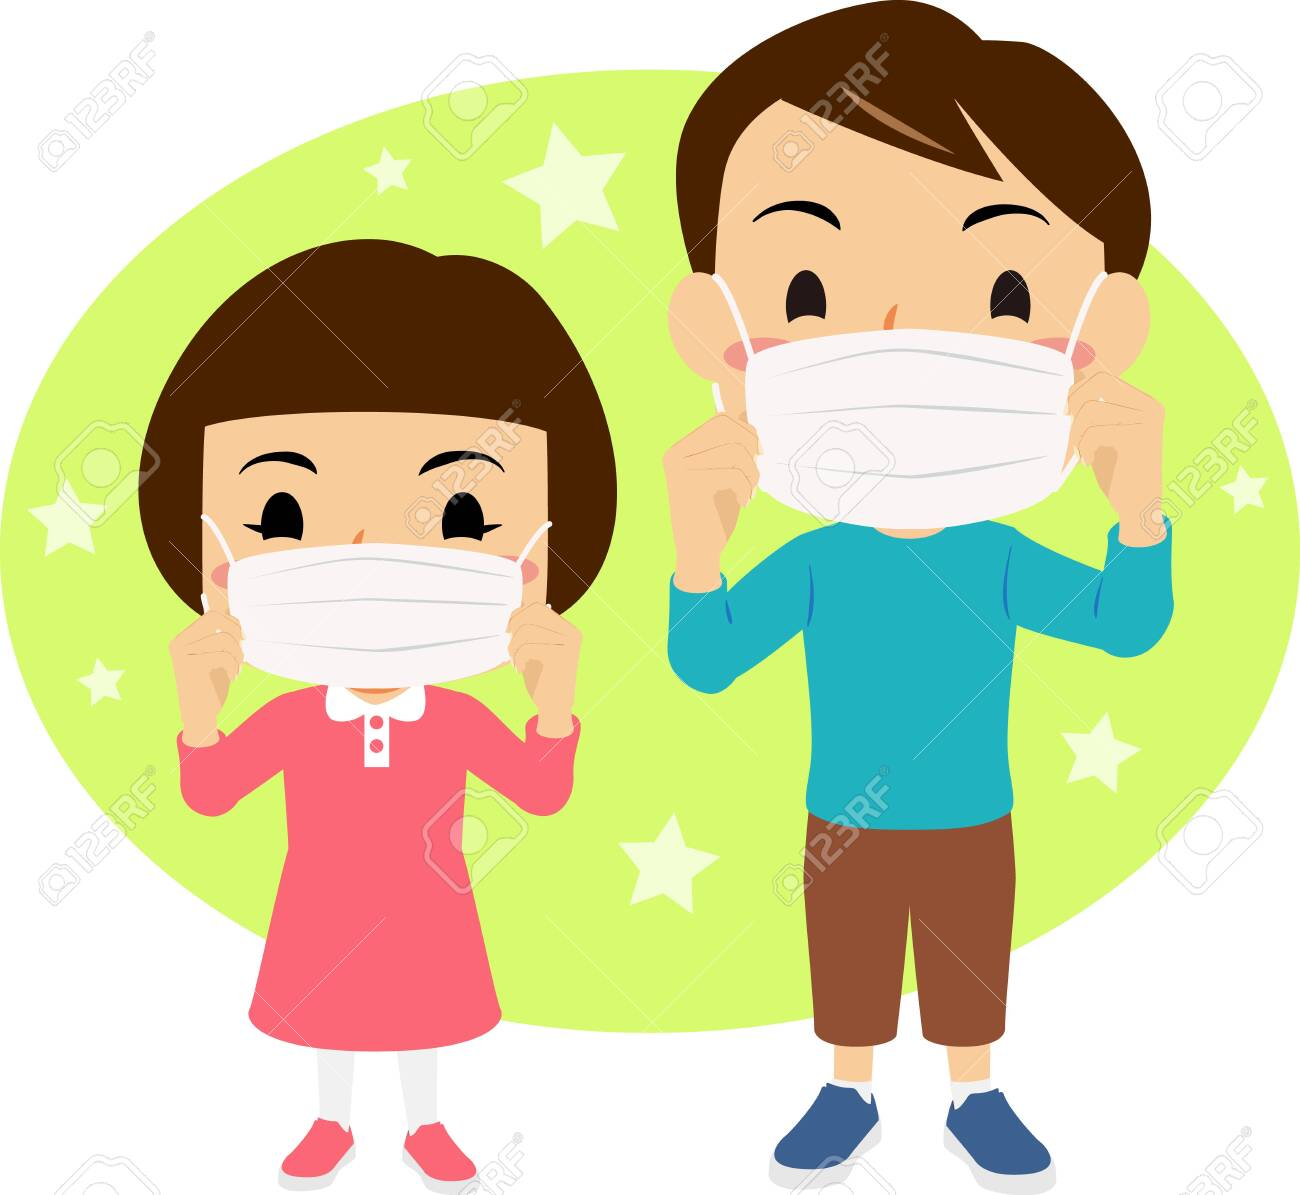 Illustration Of Boy And Girl Wearing Masks Royalty Free Cliparts, Vectors,  And Stock Illustration. Image 141696392.